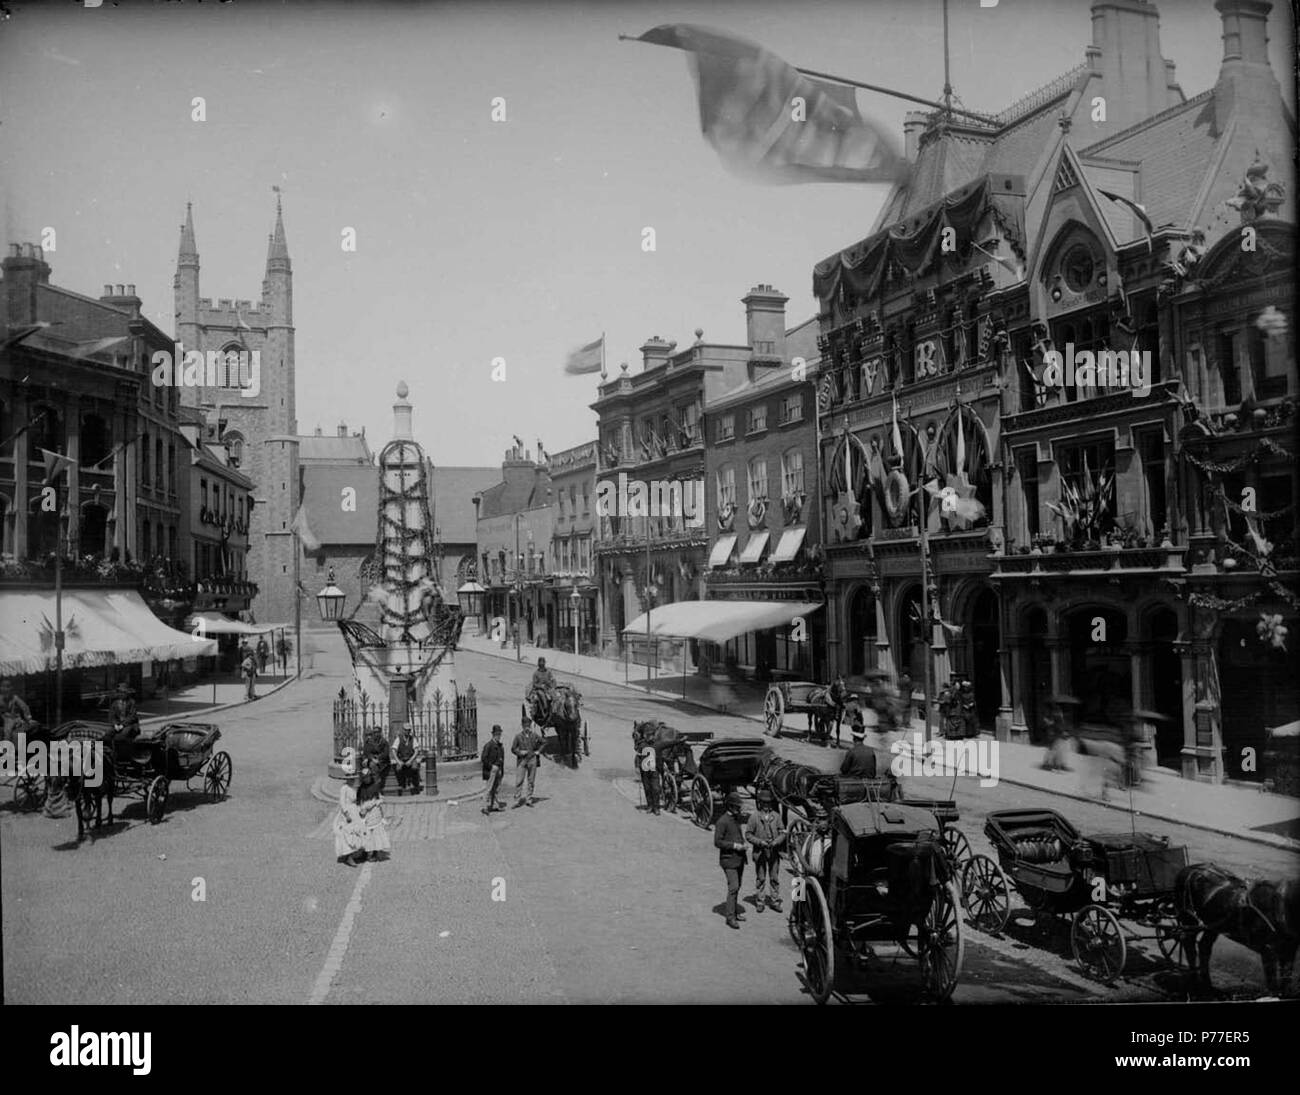 English: Market Place, Reading, looking northwards to St. Laurence's Church, 1887. The Simeon Obelisk, designed by Sir John Soane, is garlanded to celebrate the Golden Jubilee of Queen Victoria. On the west side, Nos. 33 and 34 (J. S. Salmon and Son, tea dealers). On the east side, Nos. 21 and 20 (the Royal Standard Inn); Nos. 19 and 18 (the Elephant Inn); No. 17 (Frank Cooksey, estate agent); Nos. 16, 15, 14 and 13 (London and County Bank); Nos. 12 and 11 (Morris and Davis, tailors); No. 8 (Sutton and Sons, seedsmen); No. 7 (the 'Reading Mercury' office); No. 6 (George Russell Butler, estate  - Stock Image